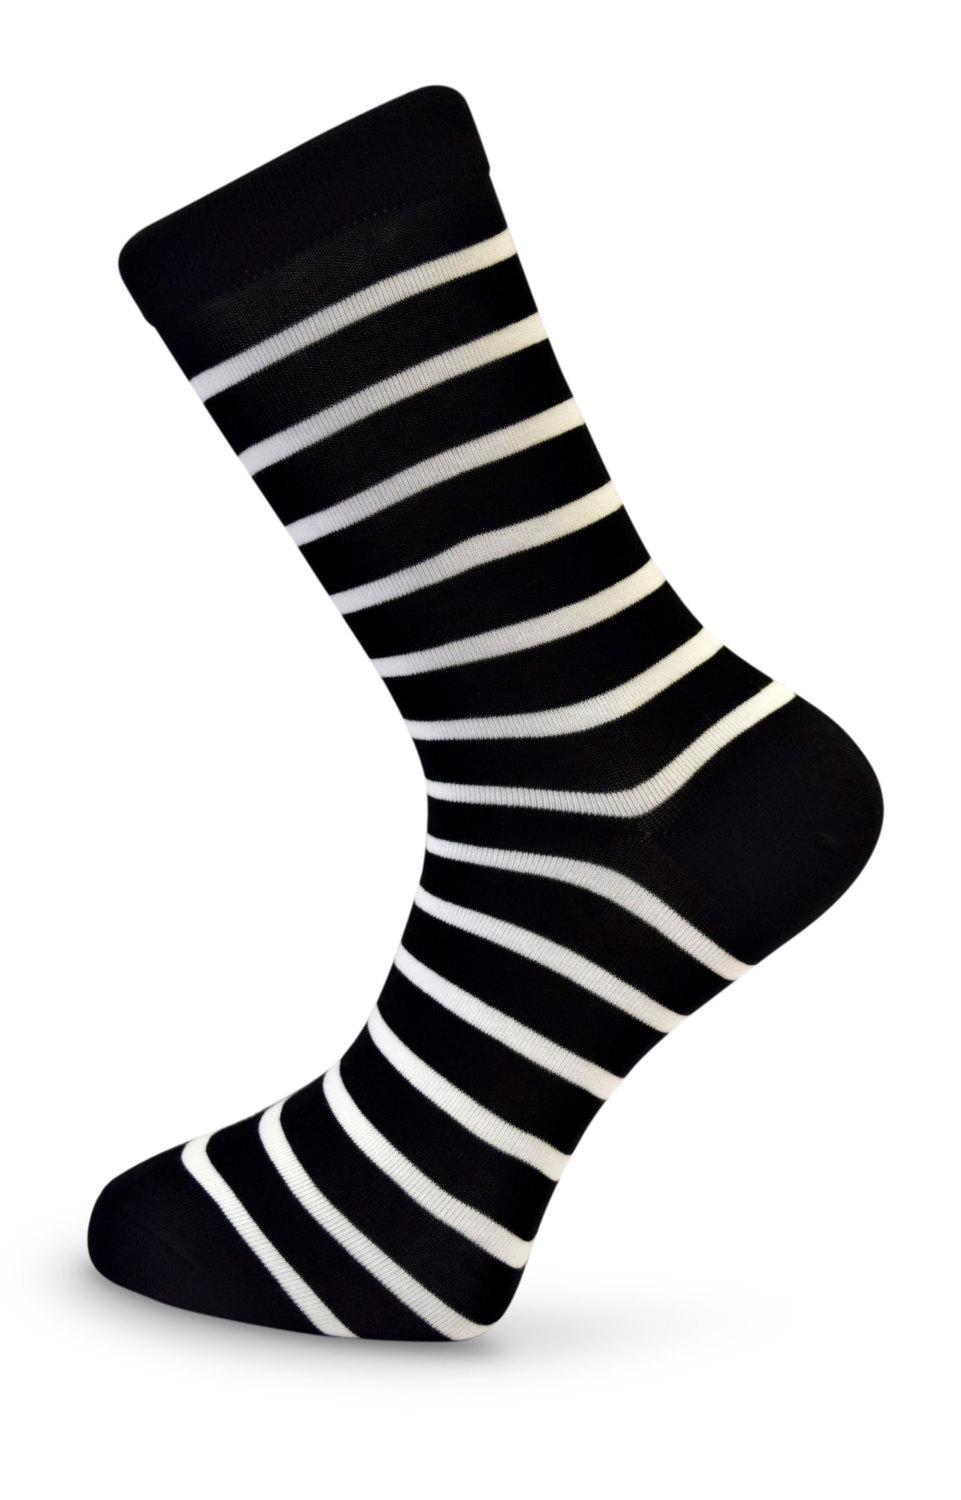 Black & White Thin Striped Mens Socks by Frederick Thomas of London FT3105a fun,